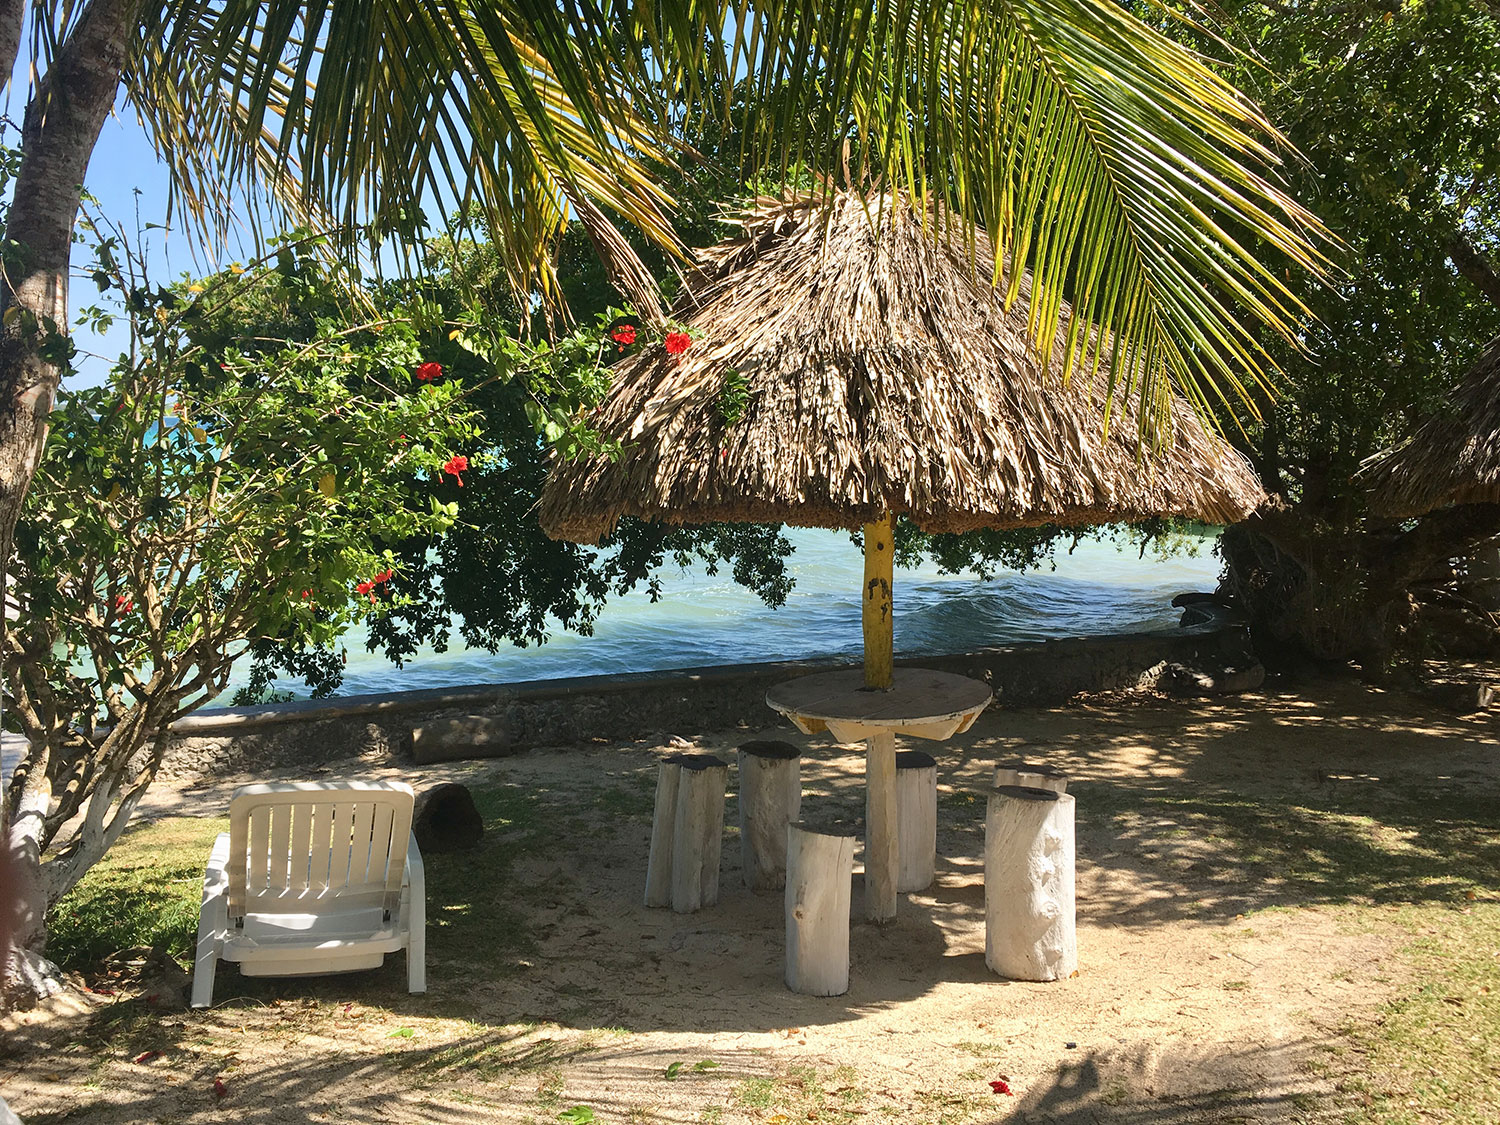 Hammocks_and_Ruins_What_to_Do_Yucatan_Mexico__village_lakes_Maya_6.jpg